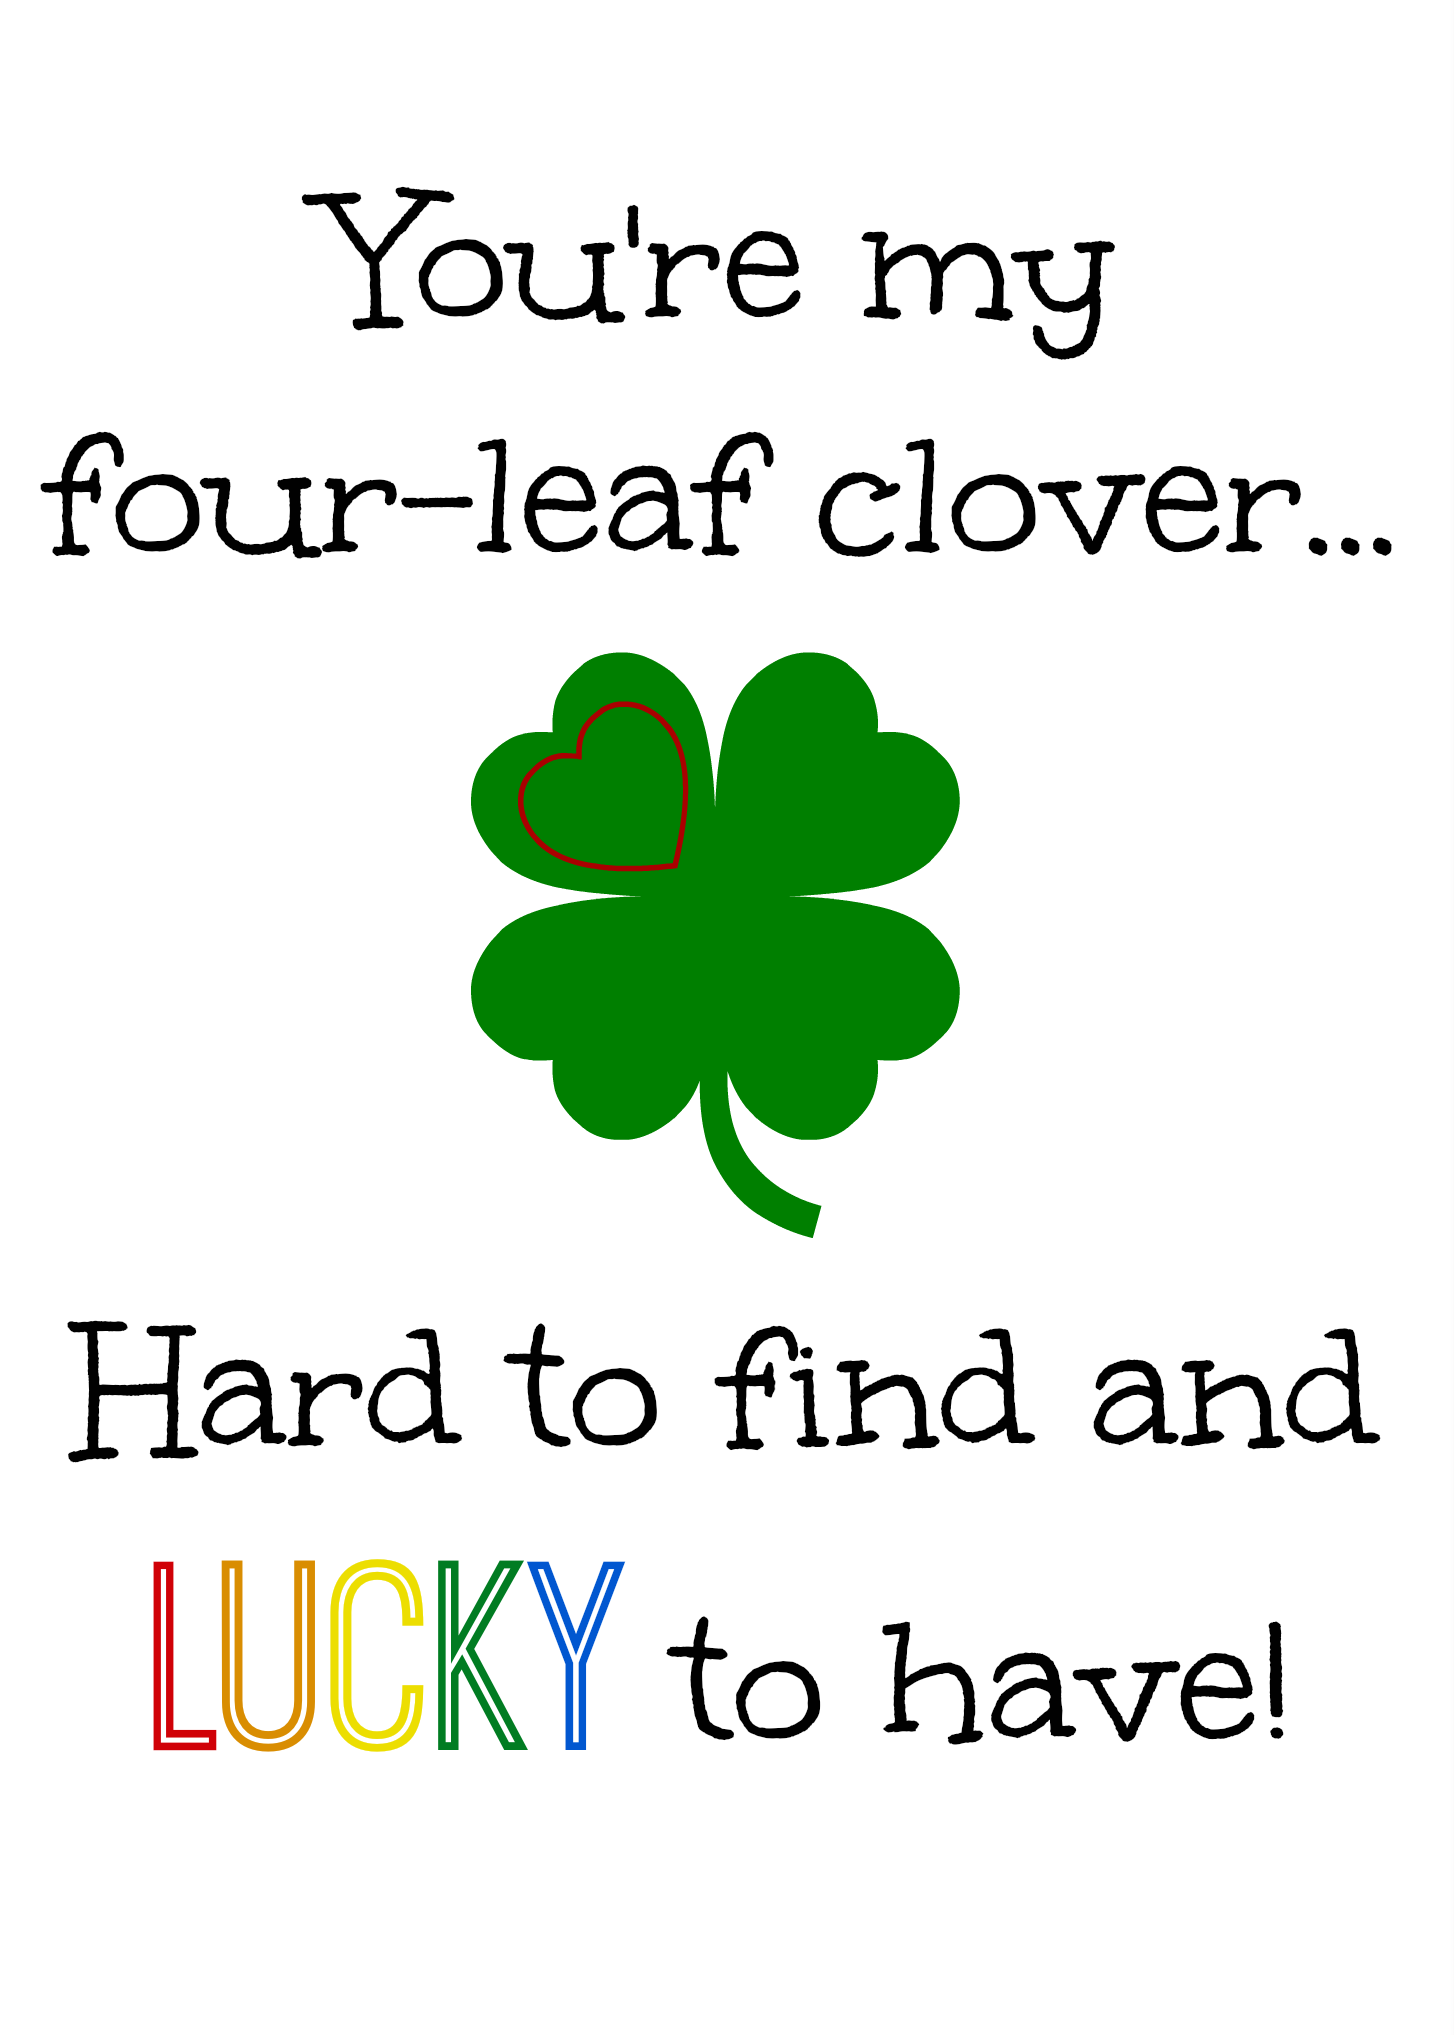 image regarding 4 Leaf Clover Printable named Youre My 4 Leaf Clover, Difficult toward Uncover and Fortunate in direction of Contain.